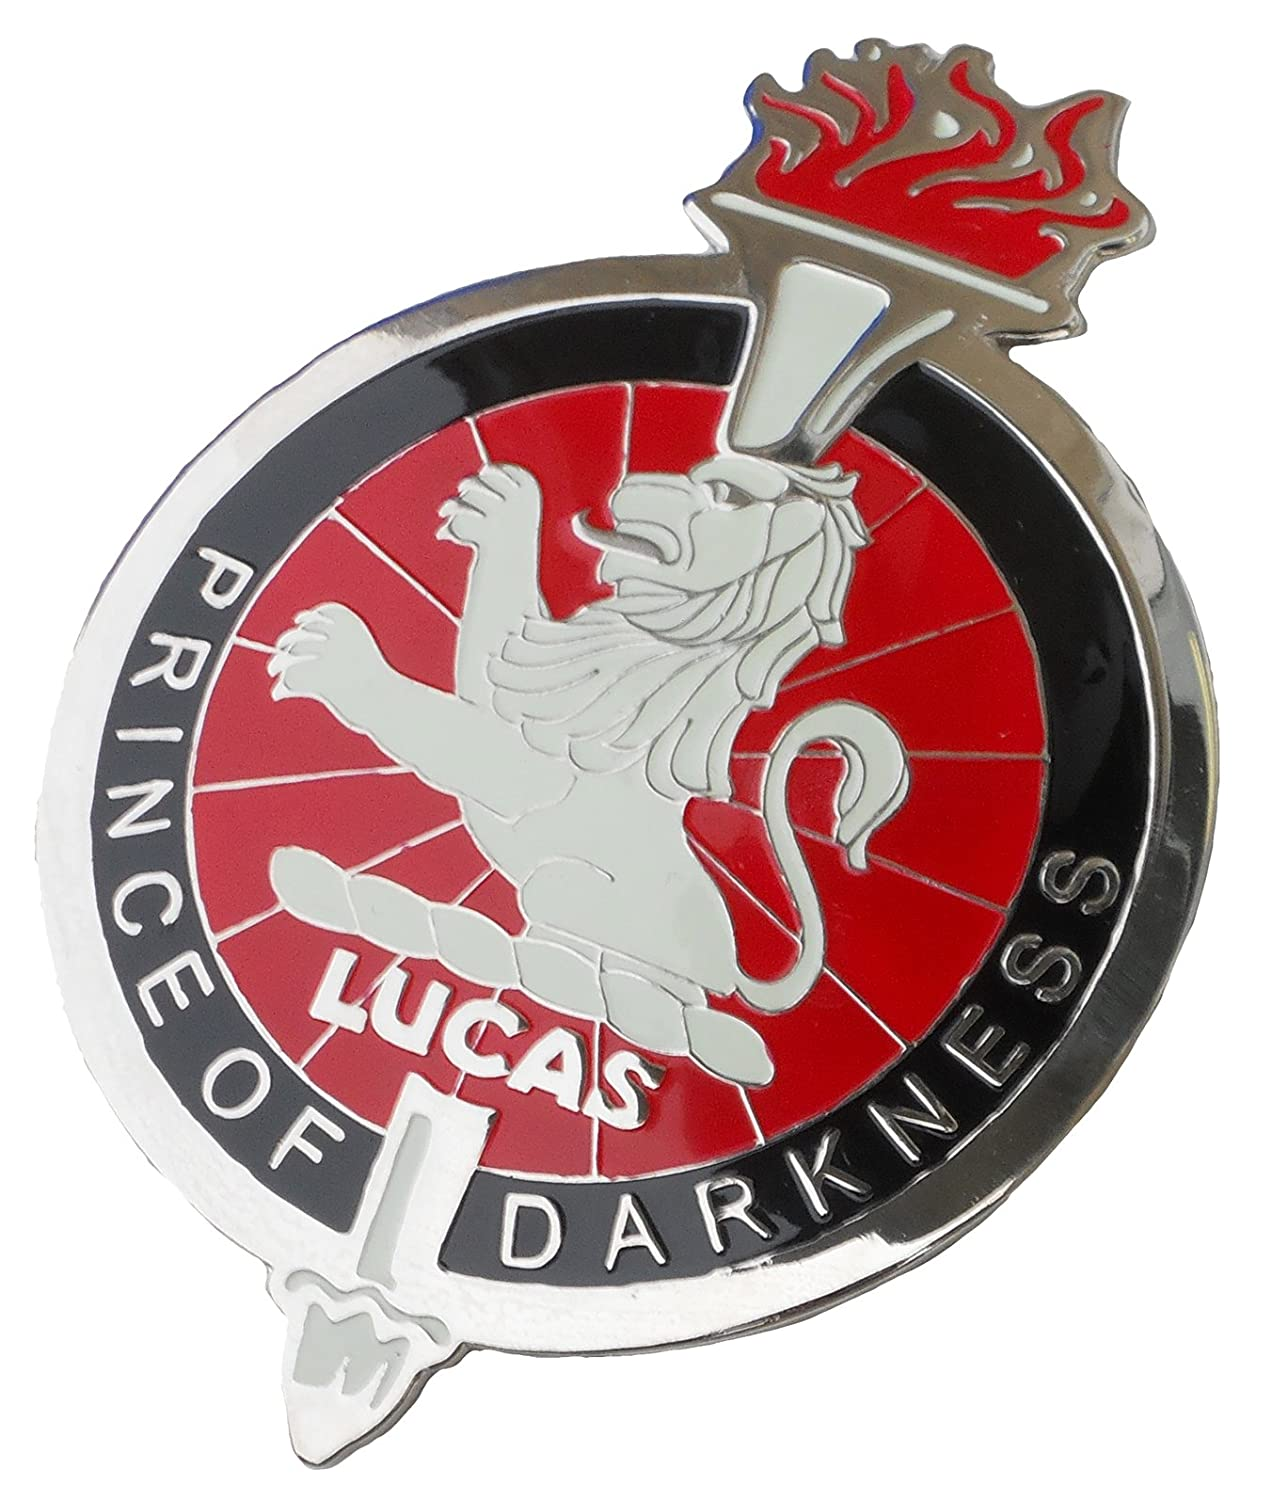 Prince of Darkness Car Grille Badge Joseph Lucas King of The Road